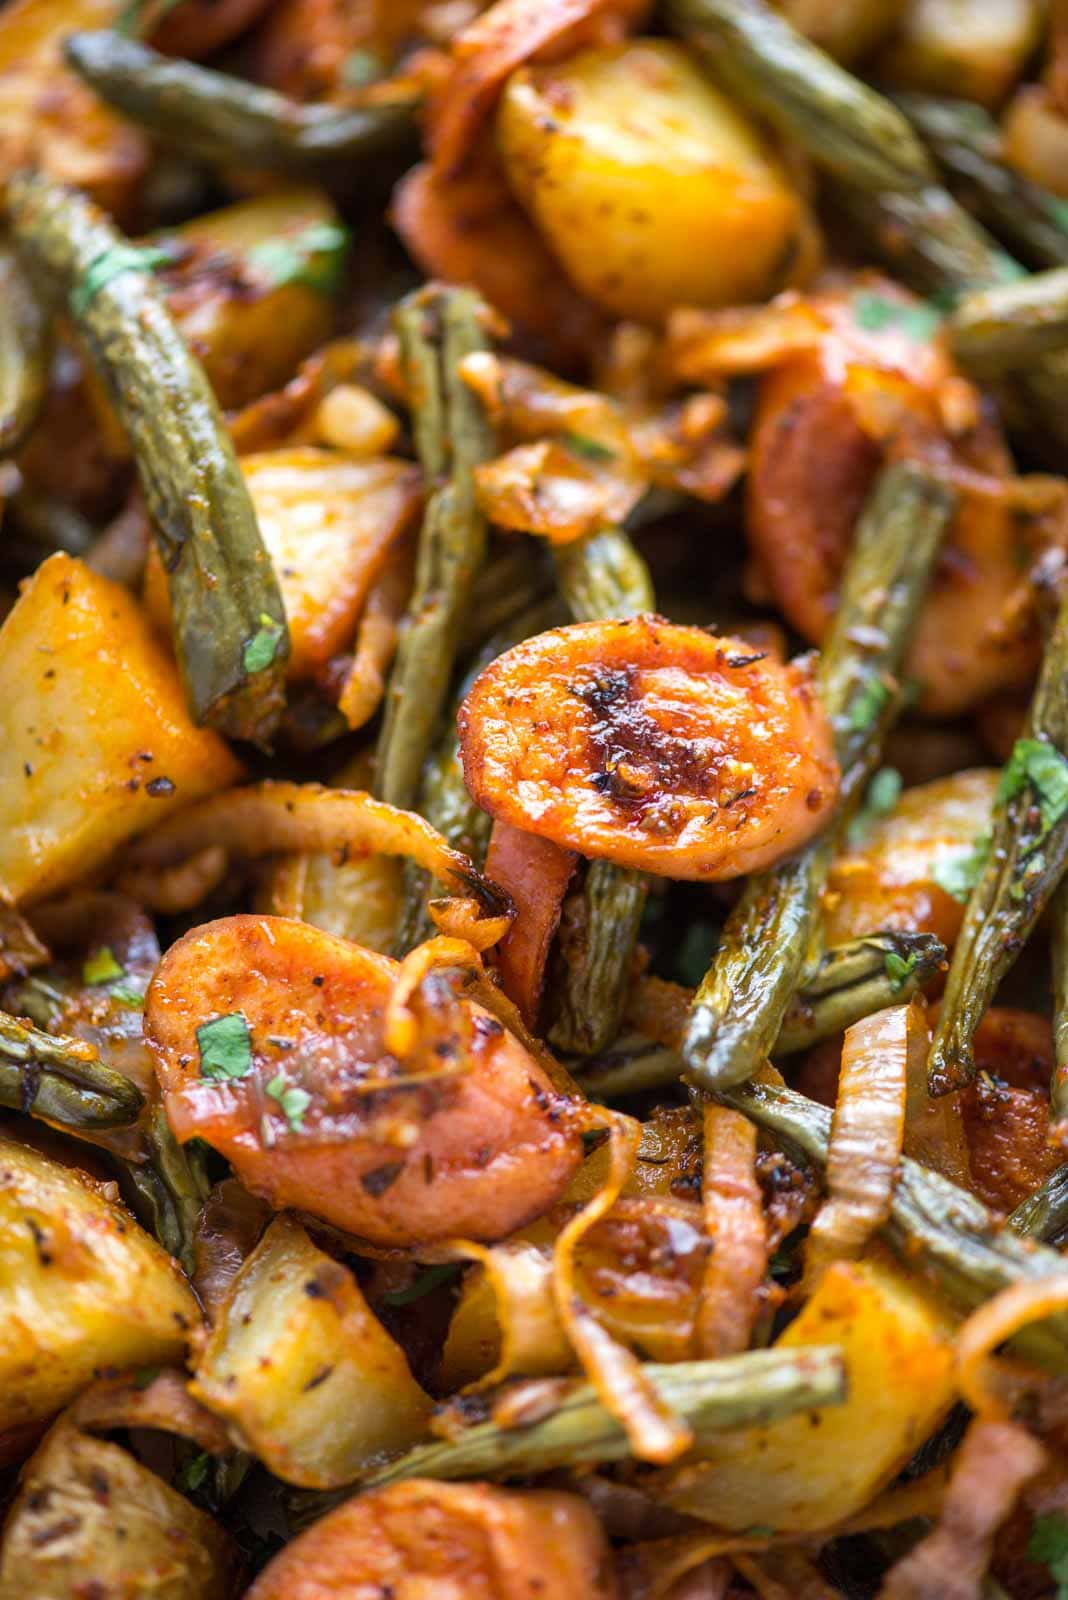 Sausage and potatoes- This super easy and delicious dinner is cooked in a Sheet pan with 10 minutes prep. Potatoes, sausage, green beans, and onion are tossed in a buttery dressing and baked to perfection.